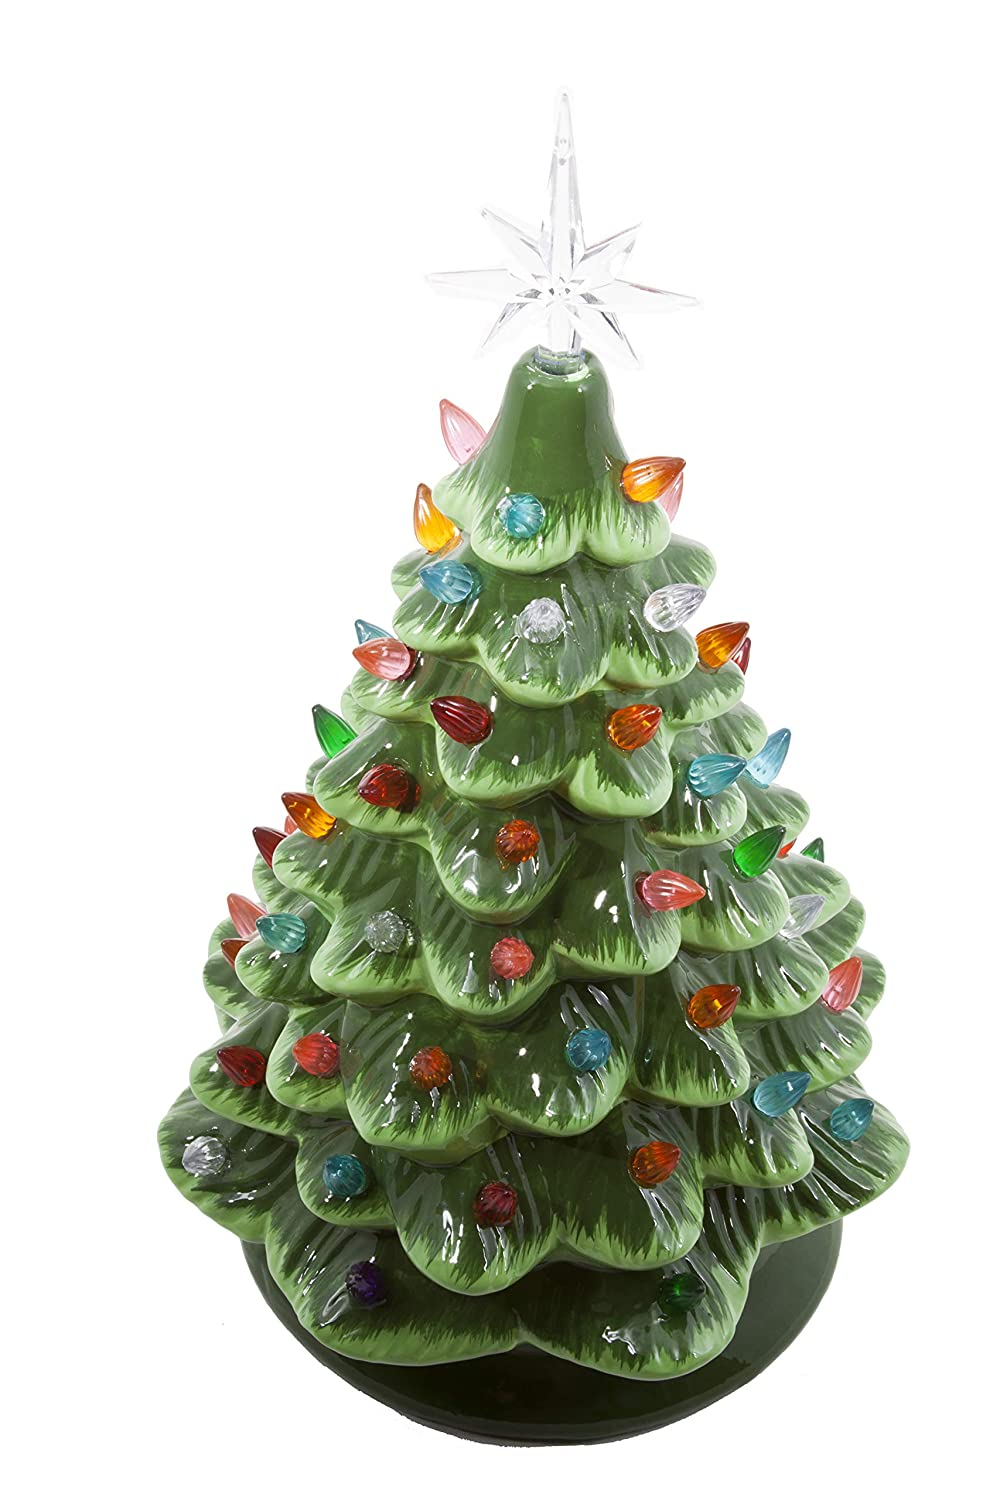 amazoncom relive christmas is forever lighted tabletop ceramic tree 145 green treemulti color lights home kitchen